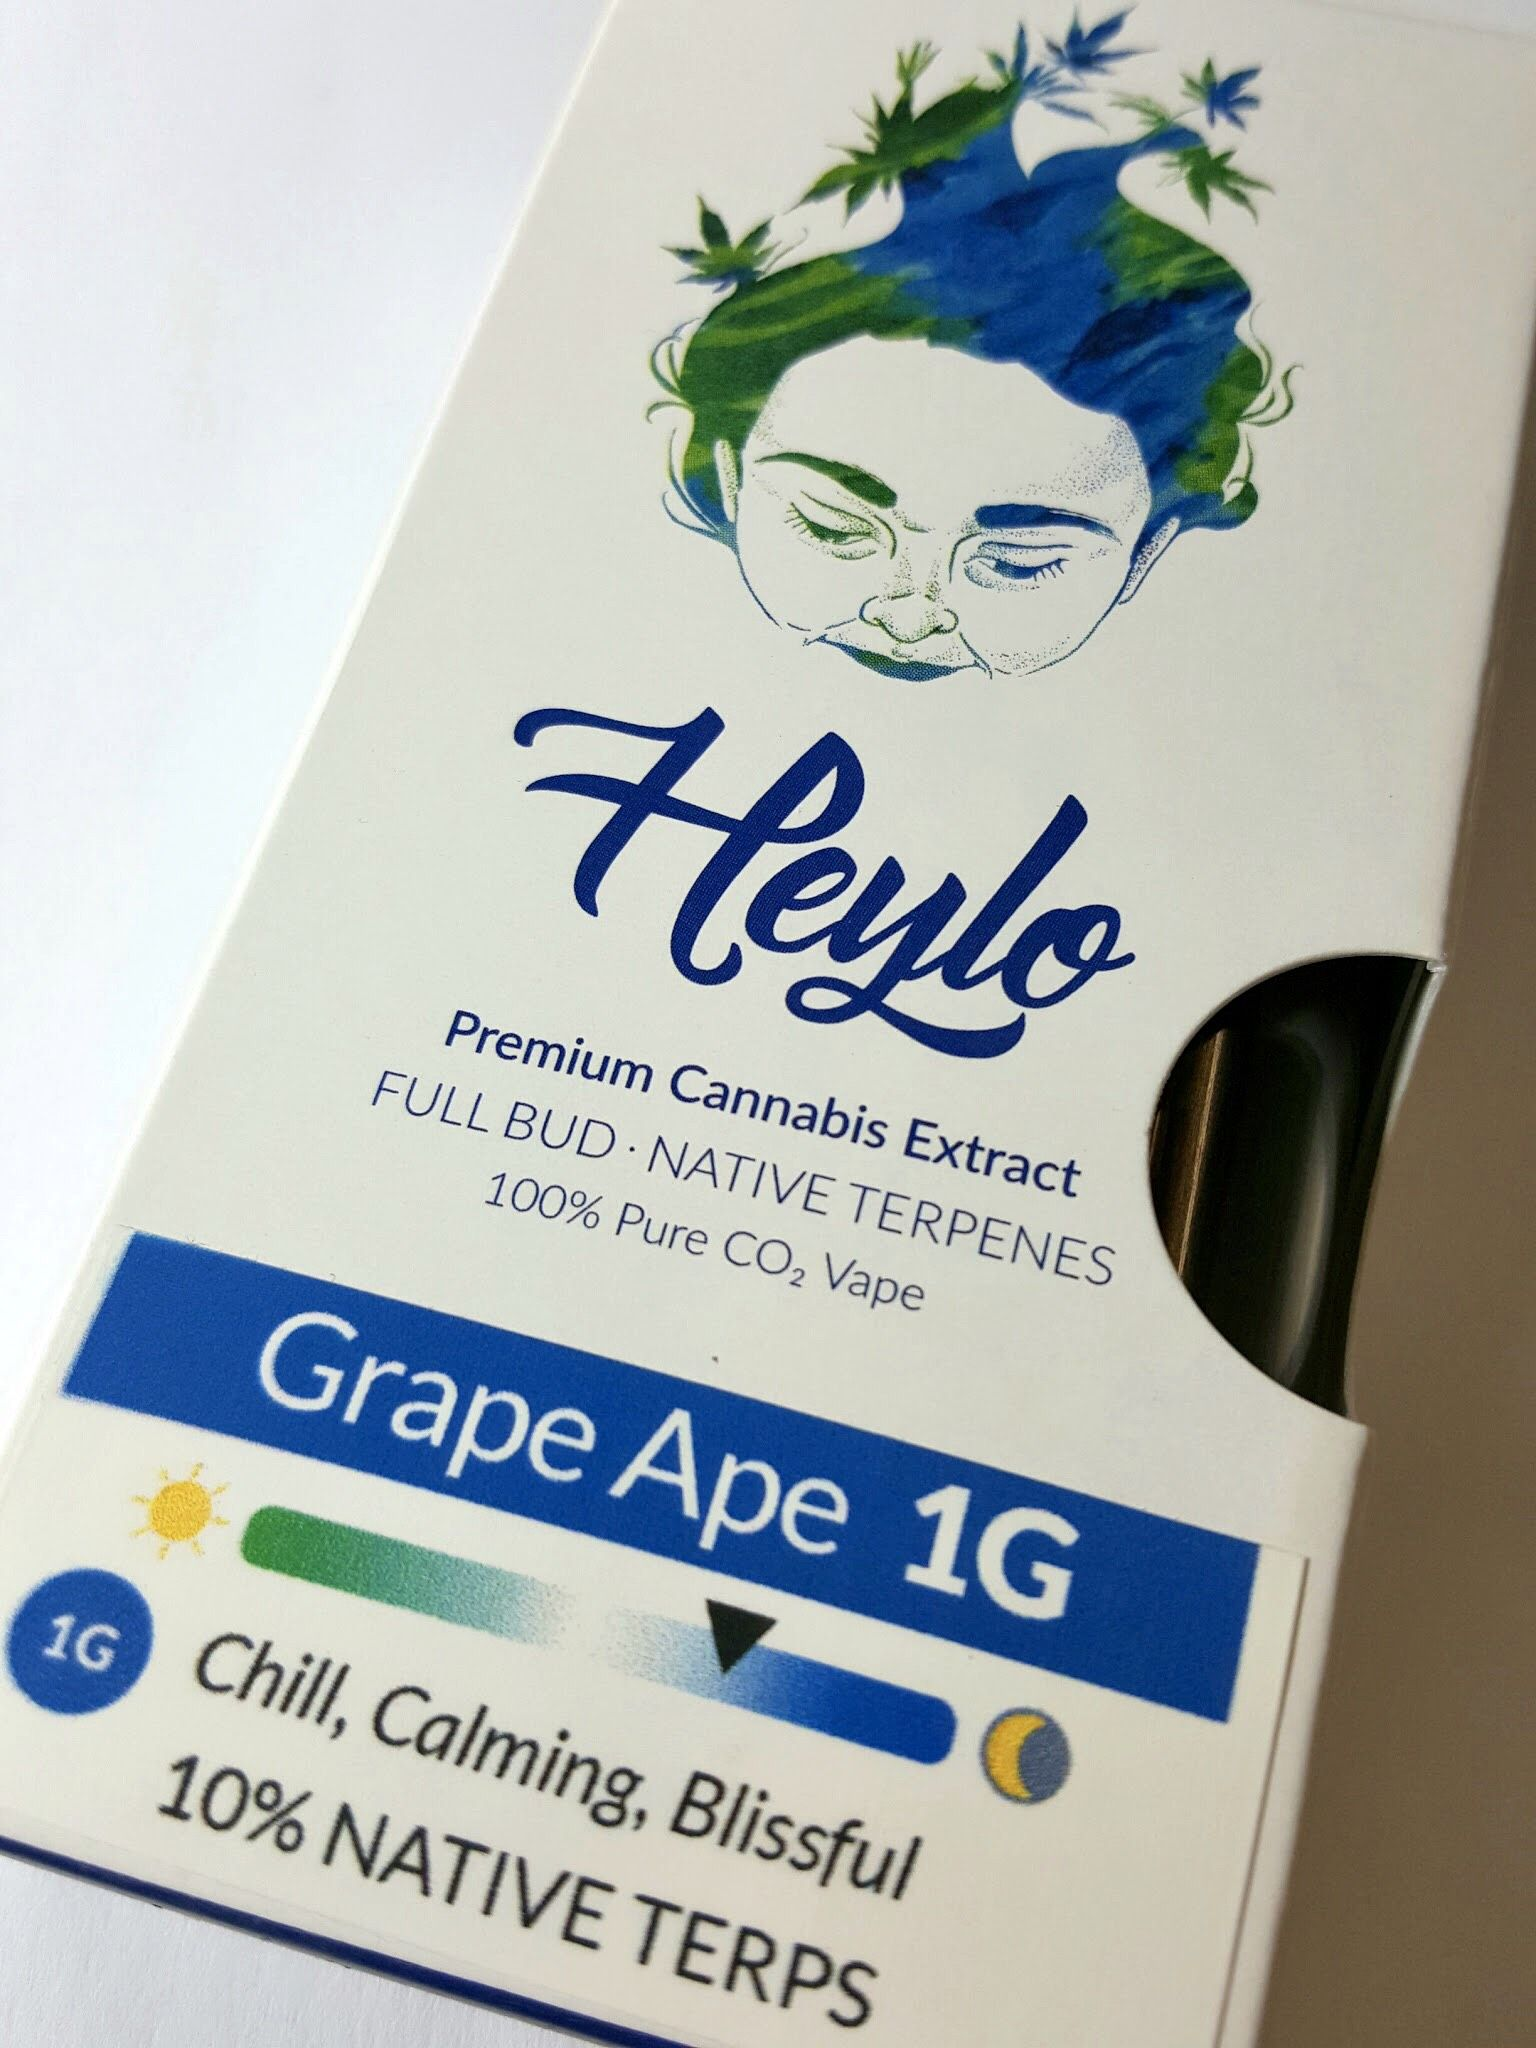 Heylo Grape Ape vape cartridge for a chill, calming, and blissful